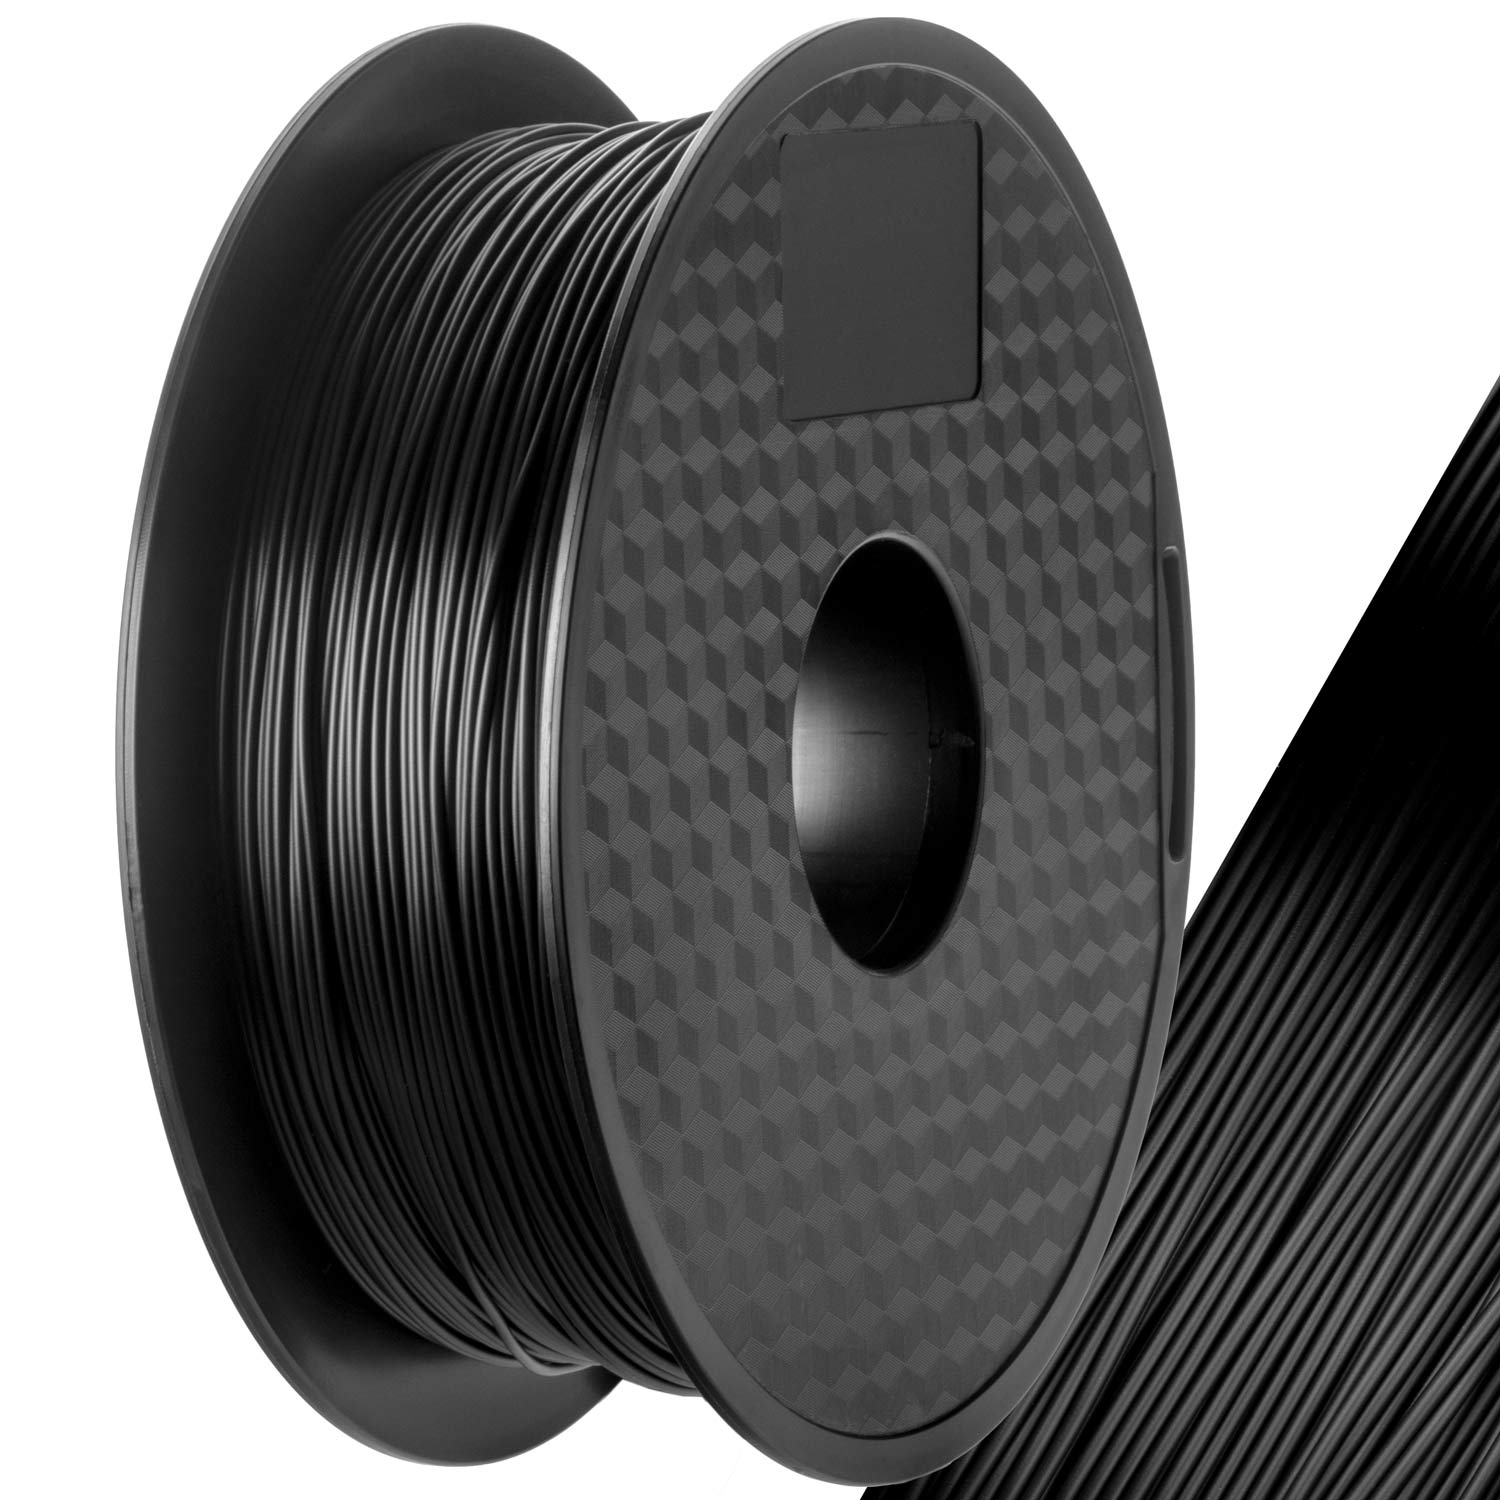 3d druck print pla filament schwarz spule f r 3d drucker 1kg 1 75mm spool black ebay. Black Bedroom Furniture Sets. Home Design Ideas